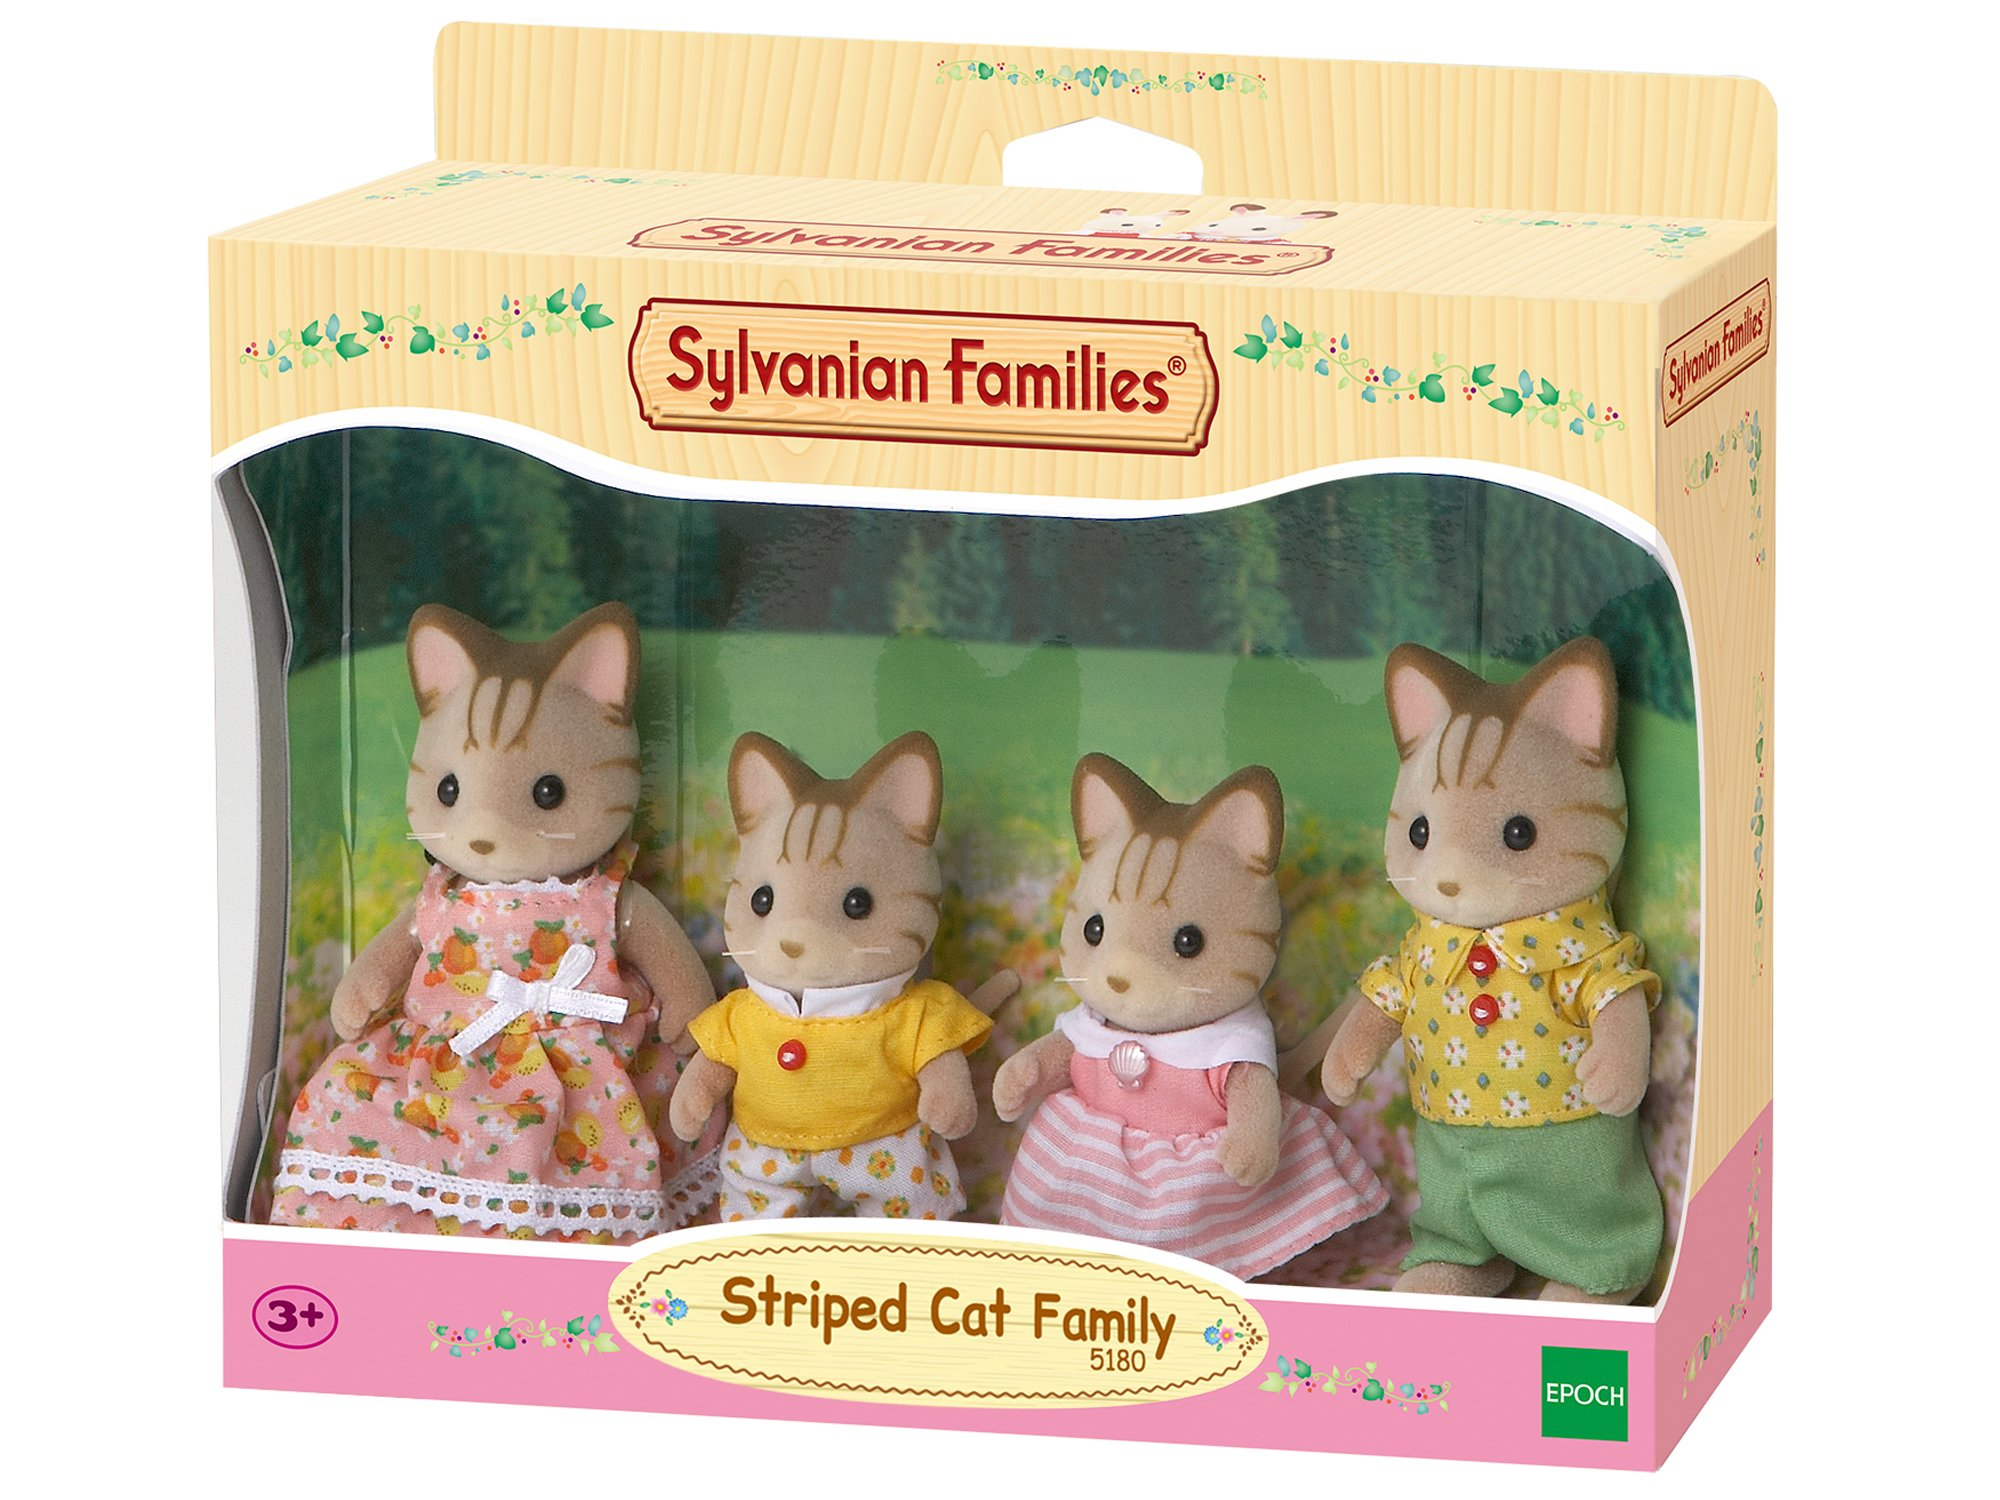 SYLVANIAN FAMILIES Striped Cat Family Mini muñecas y Accesorios Epoch para Imaginar 5180 product image